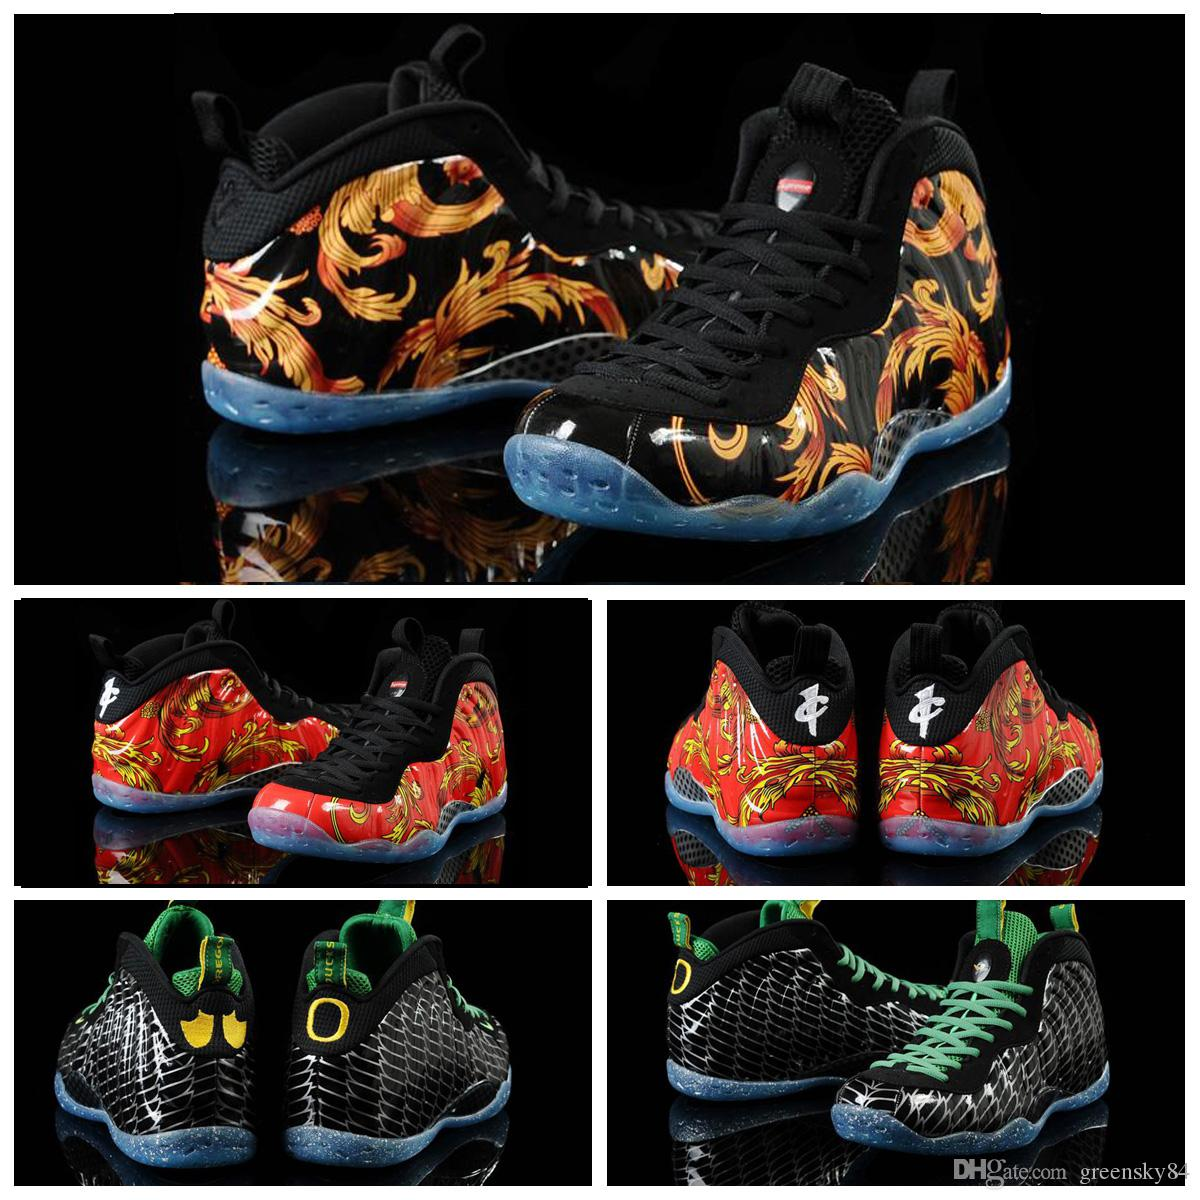 release date beba8 17ce6 2016 HOT Nike Air Foamposite One Shoes,Cheap Original Nike Foamposites  Basketball Sneakers For Men Basketball Shoes Size EUR41 EUR47 Shoes On Sale  Cheap ...